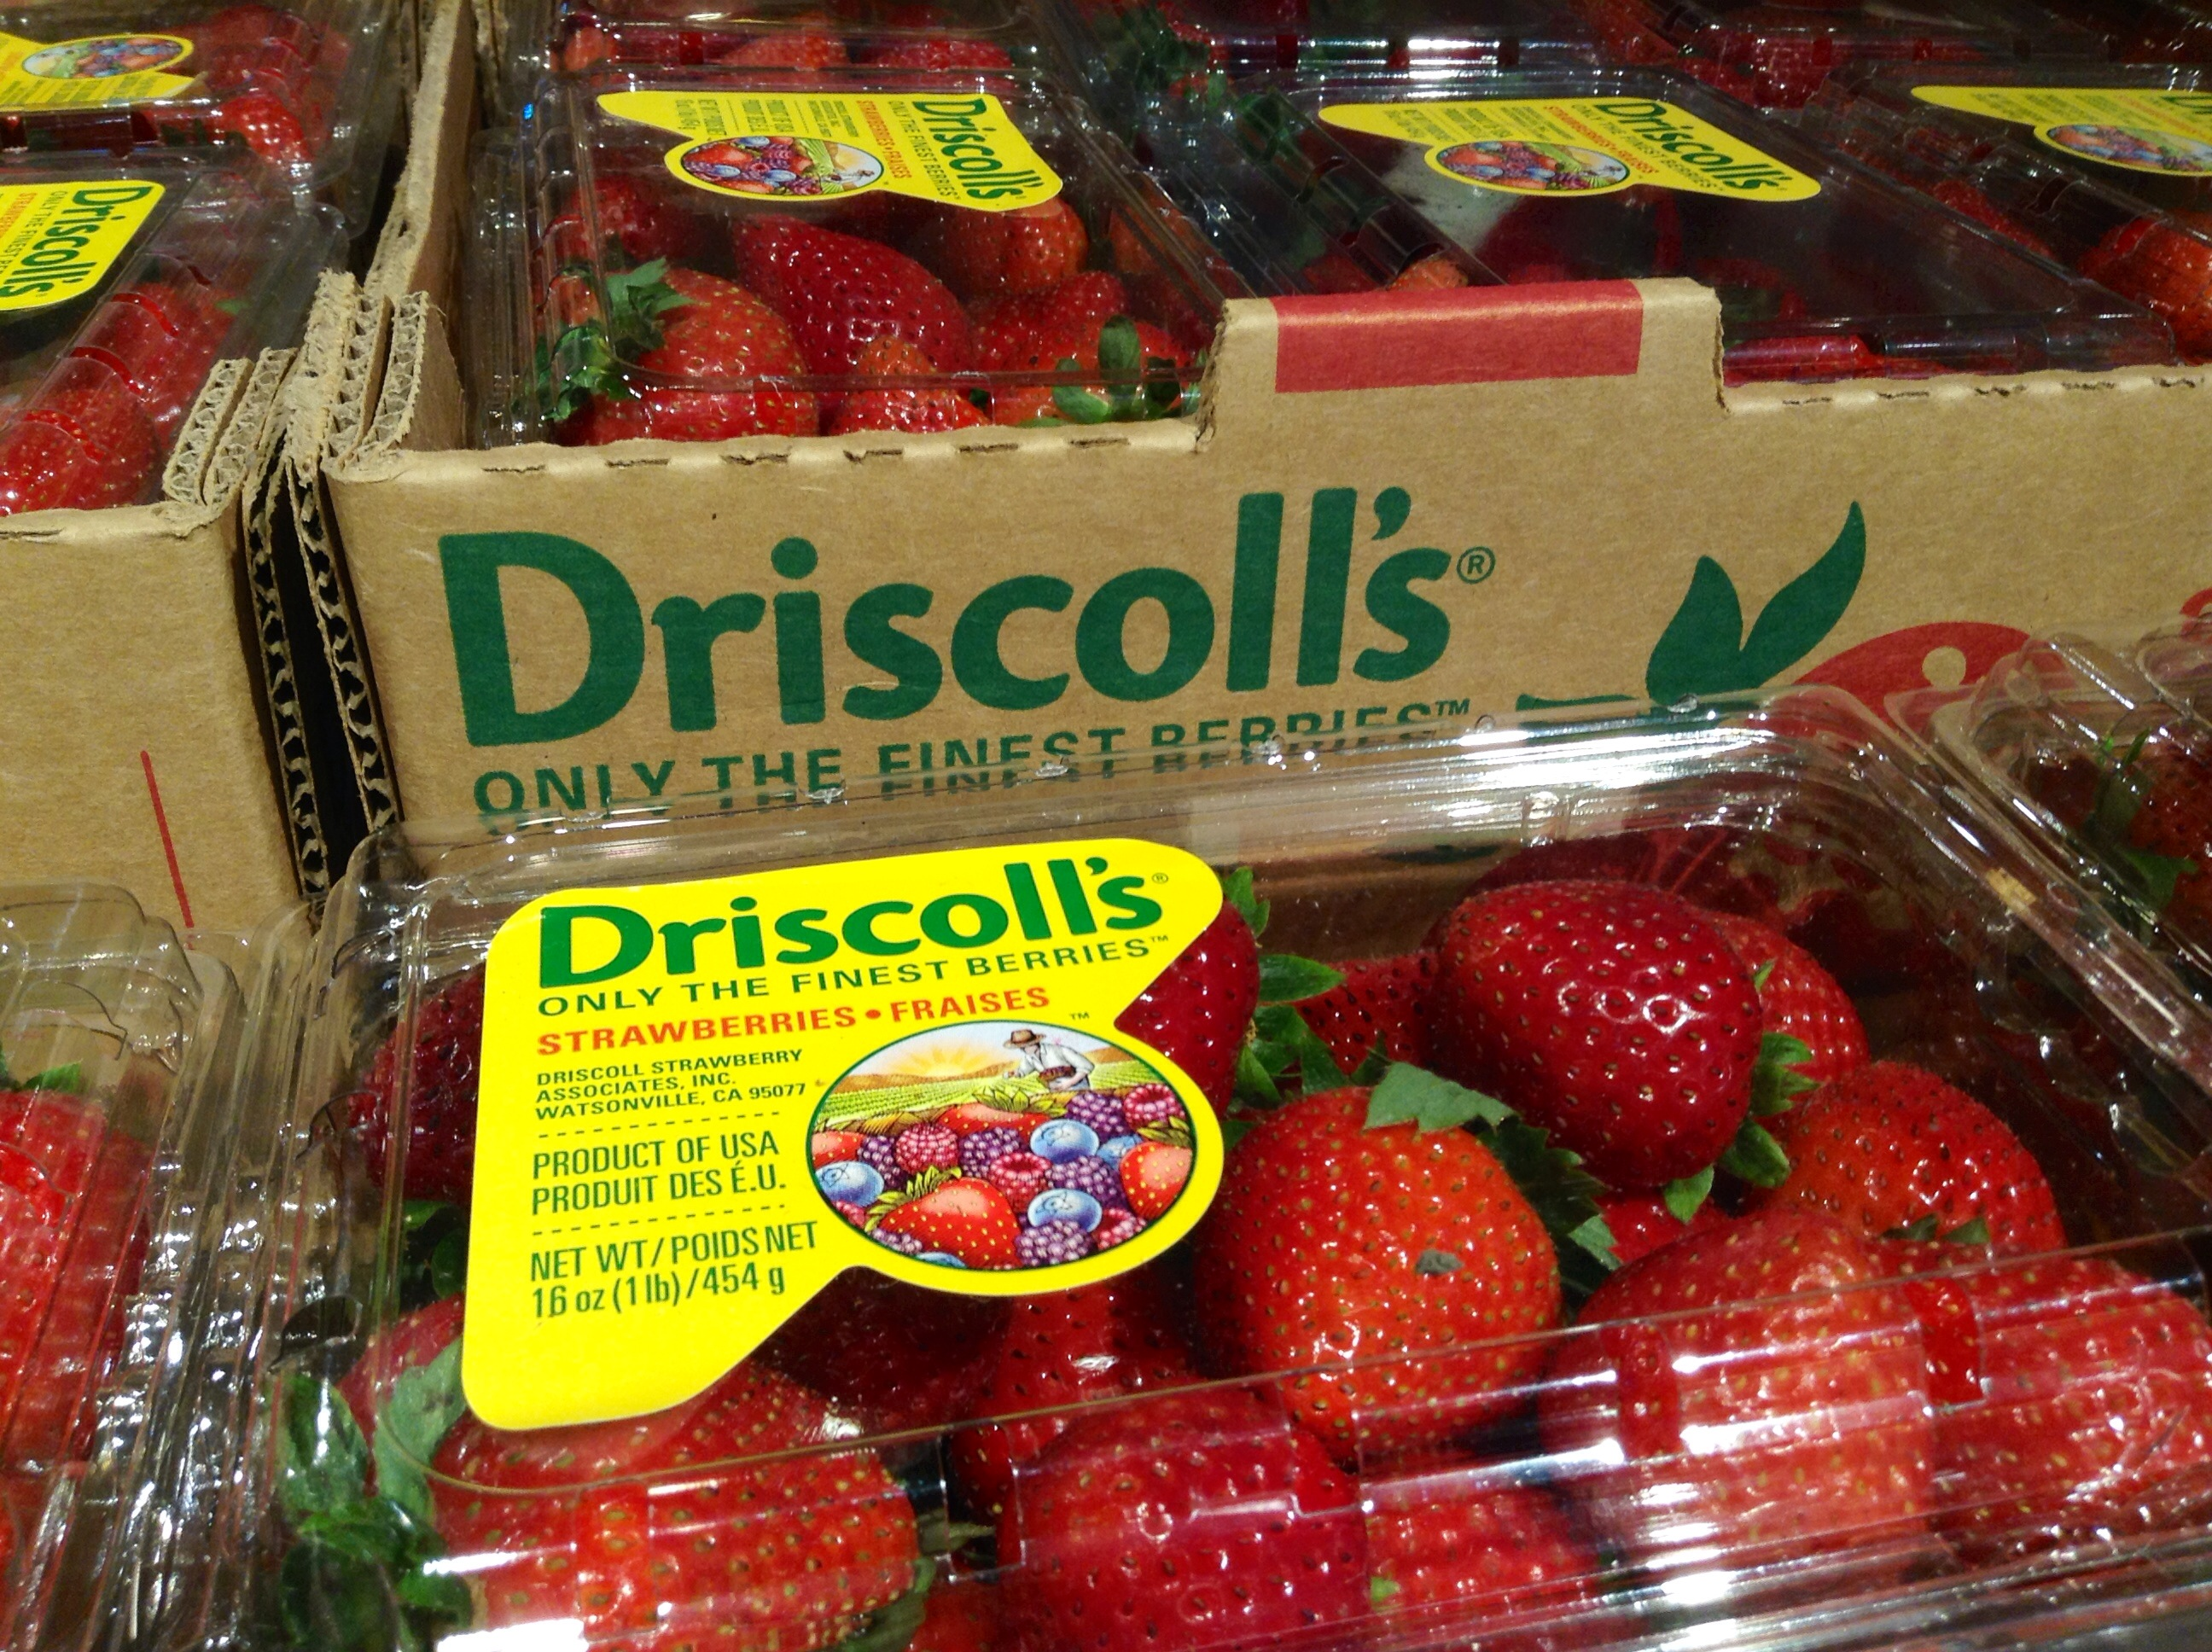 Strawberries are cheap and plentiful in the United States, but at what cost?